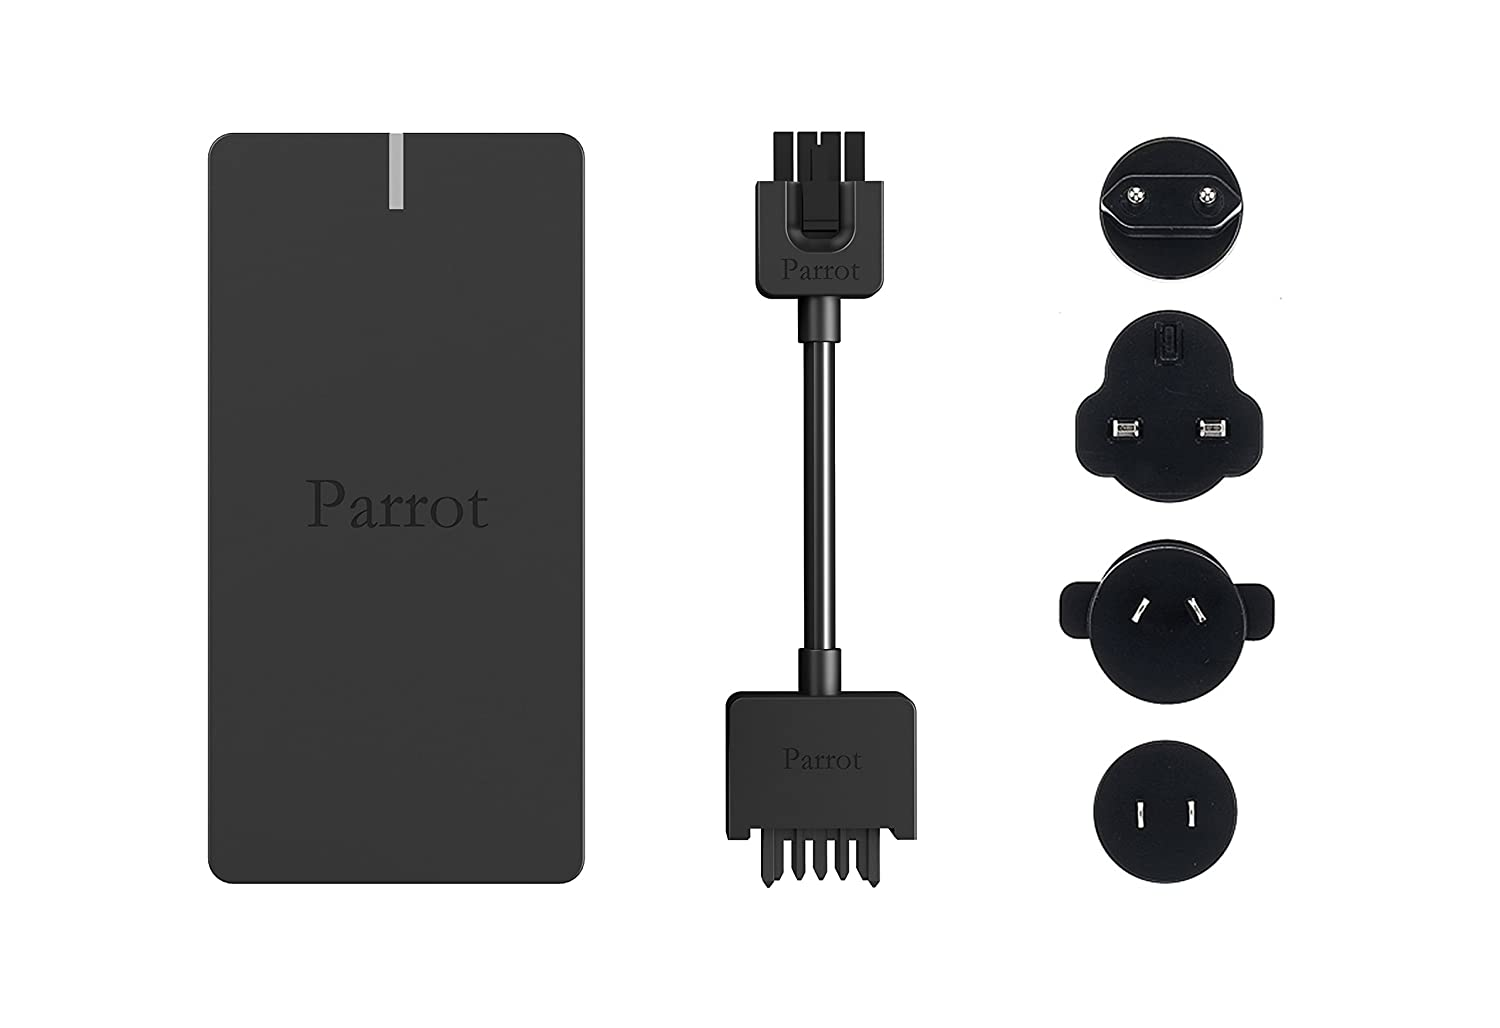 Parrot Bebop 2 Drone Battery Charger Accessory